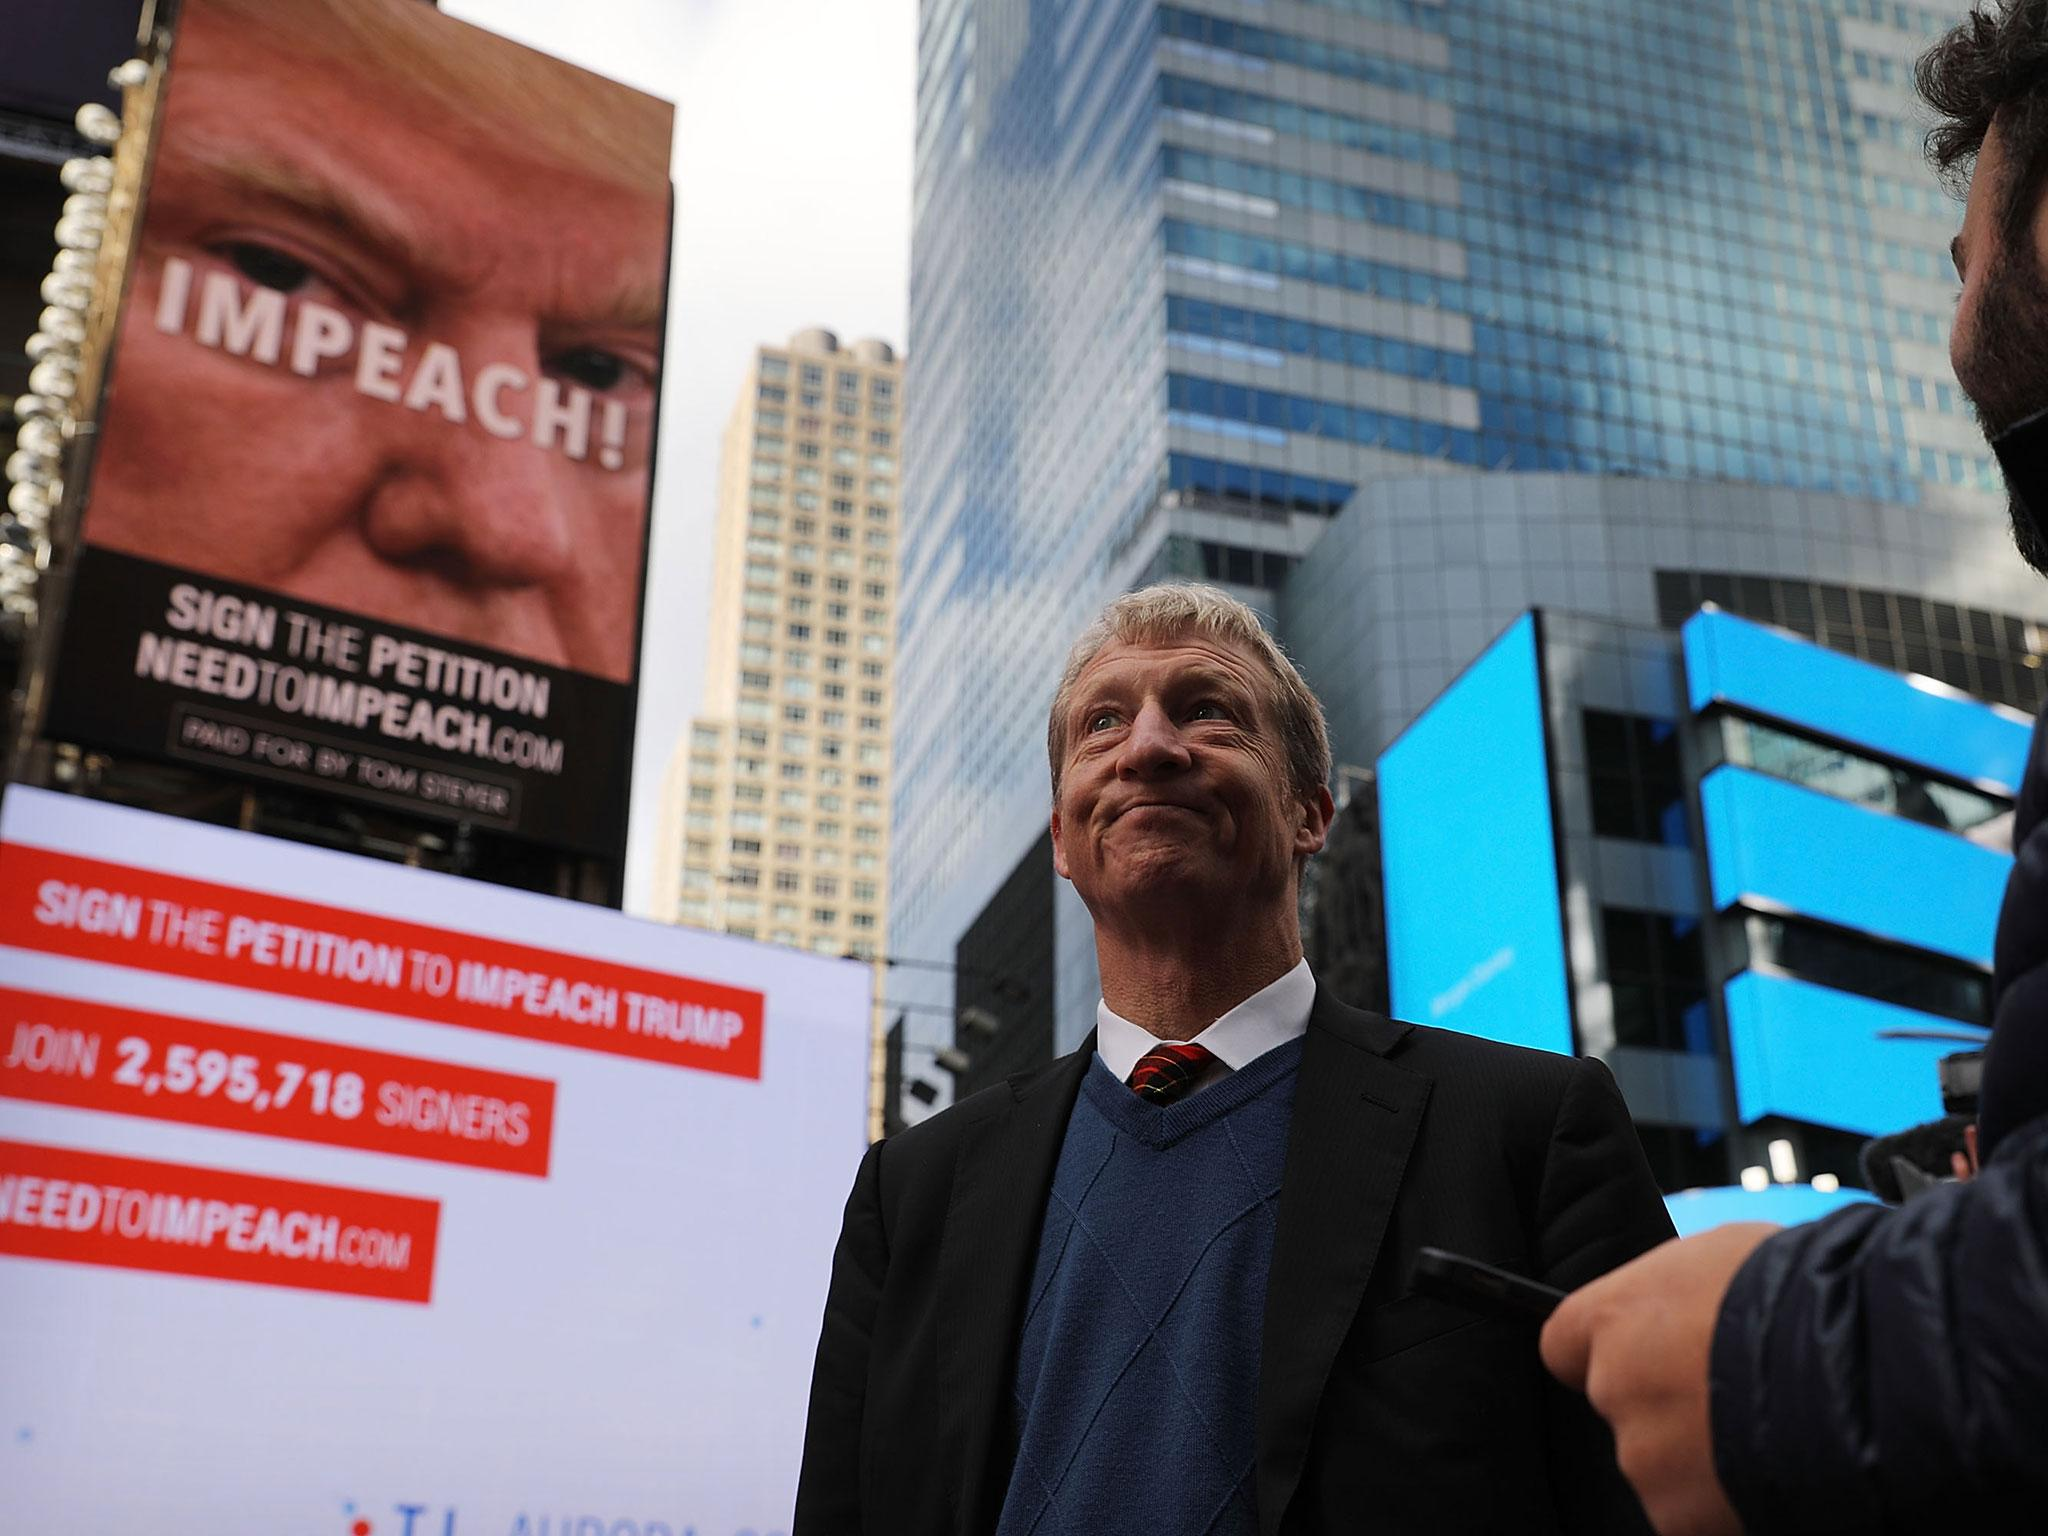 Huge billboards calling for Trump's impeachment have just gone up in Times Square